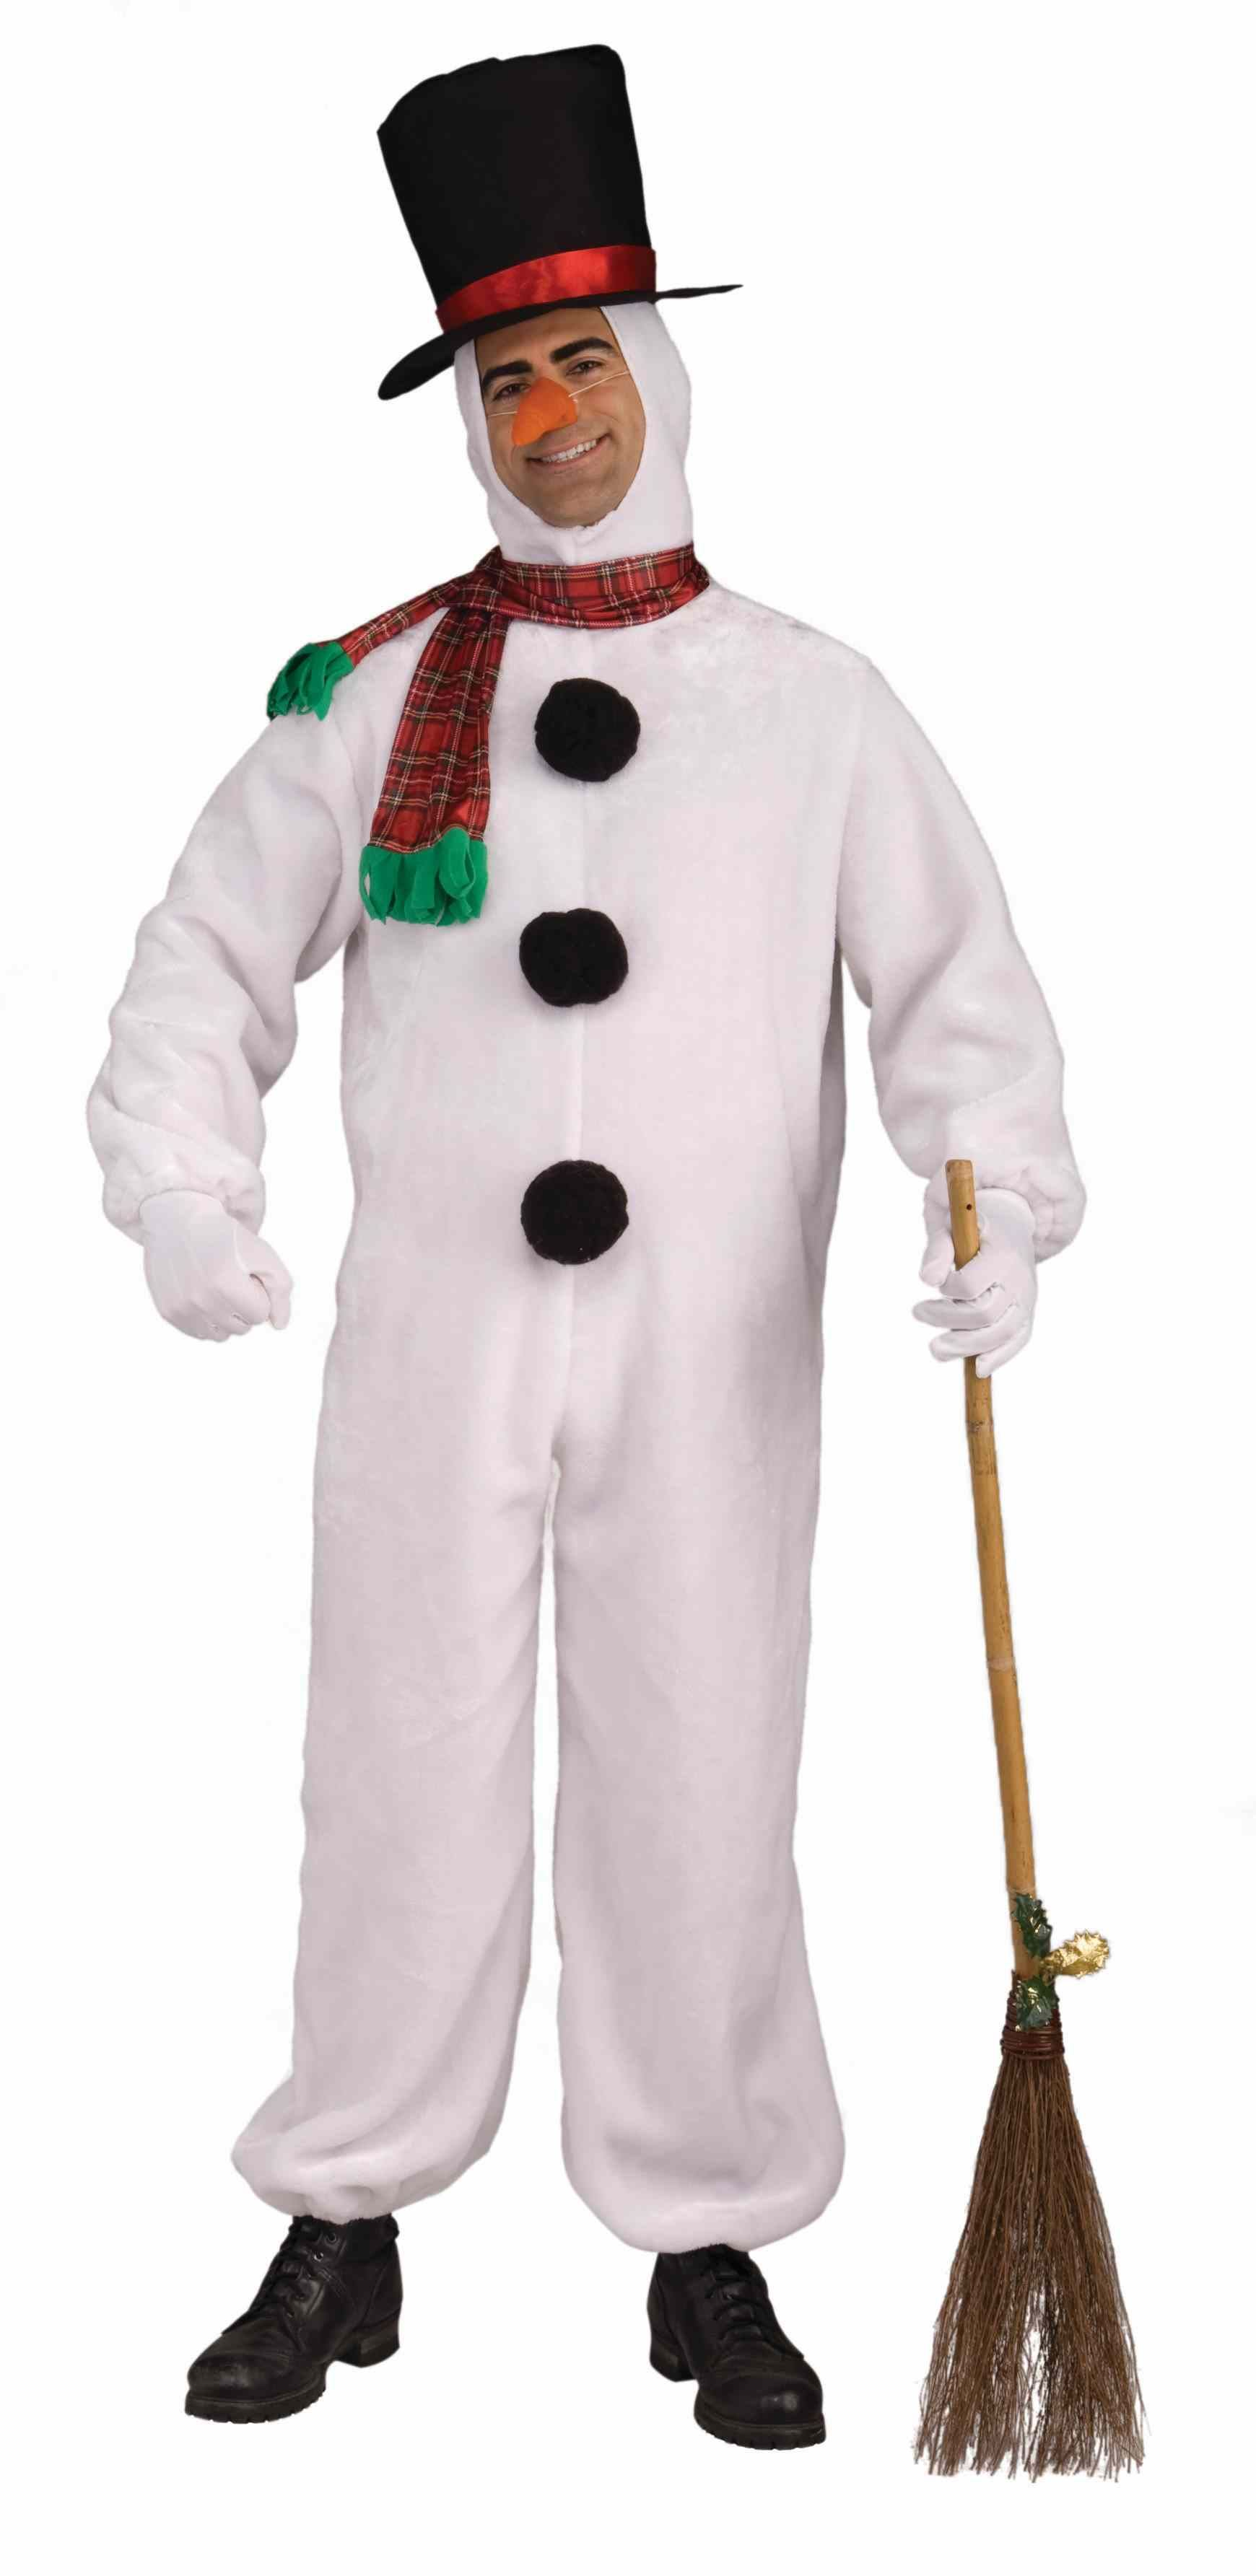 adult deluxe snowman costume | $45.99 | the costume land